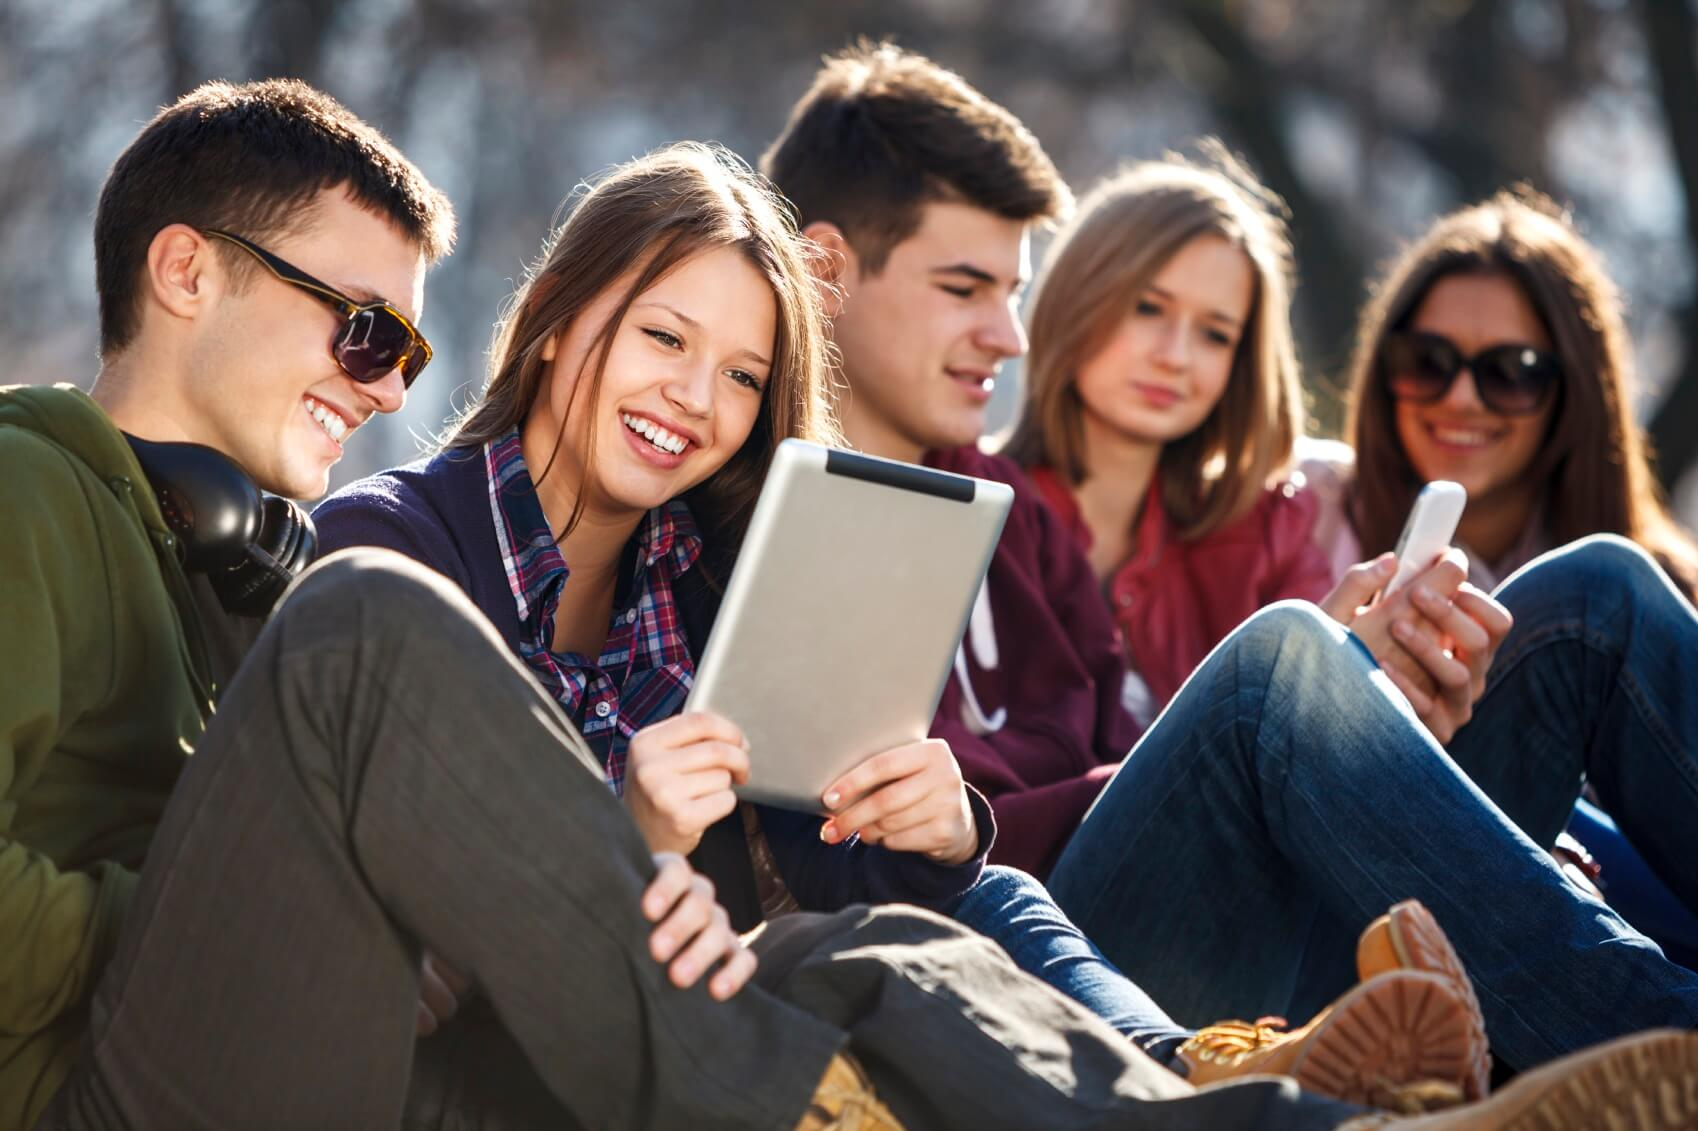 Kids Traveling Abroad - New Risks With Smartphones and Laptops.